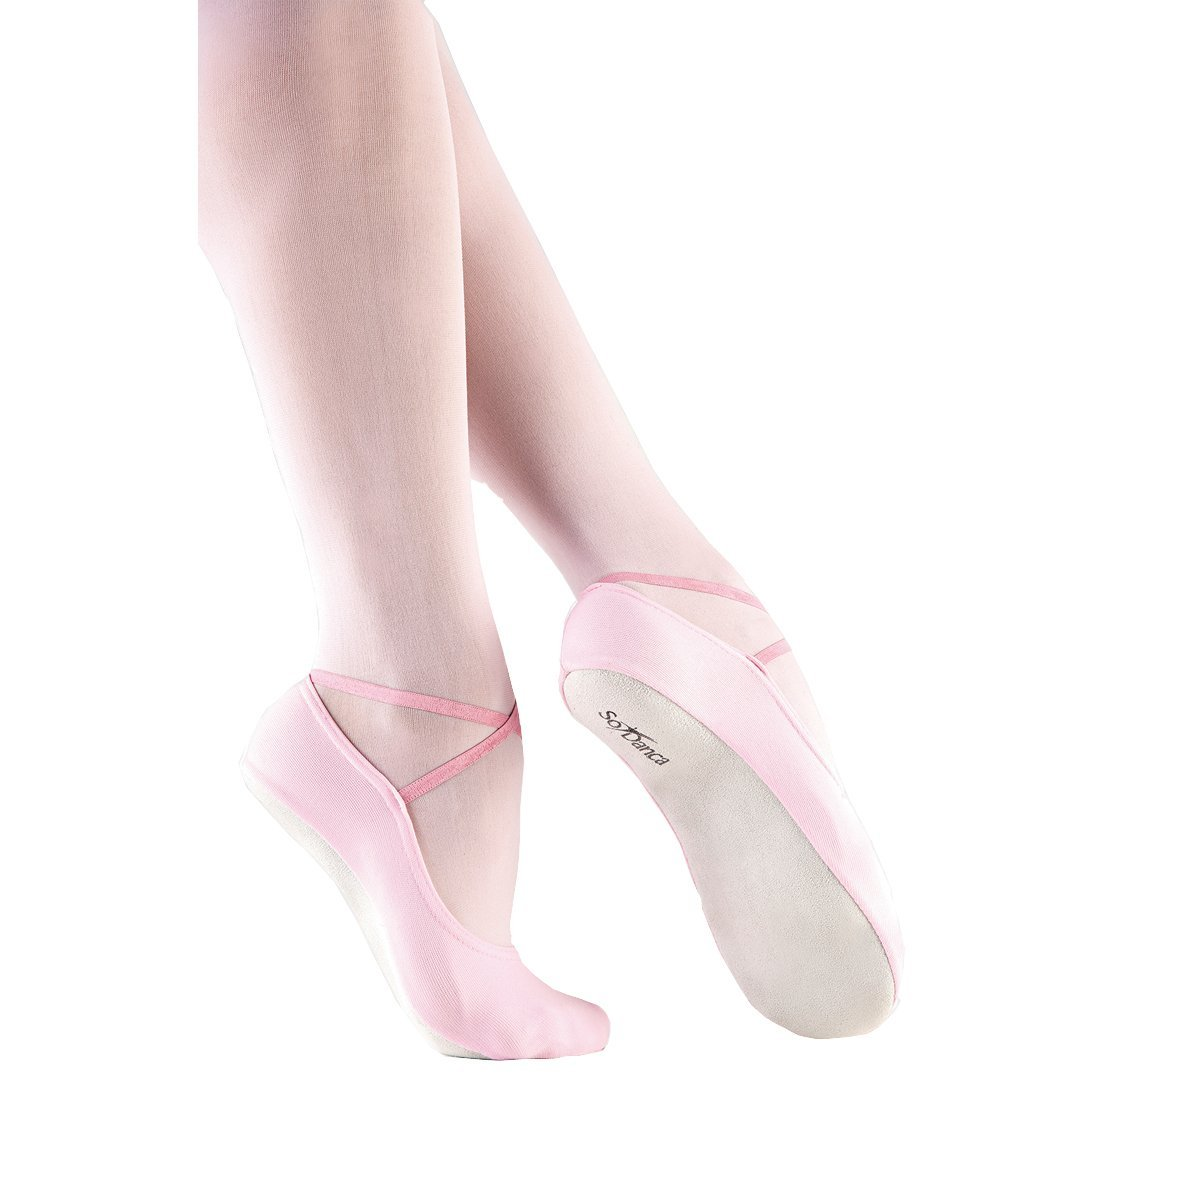 Sodanca Ba-40a Child Dani Ballet Slipper